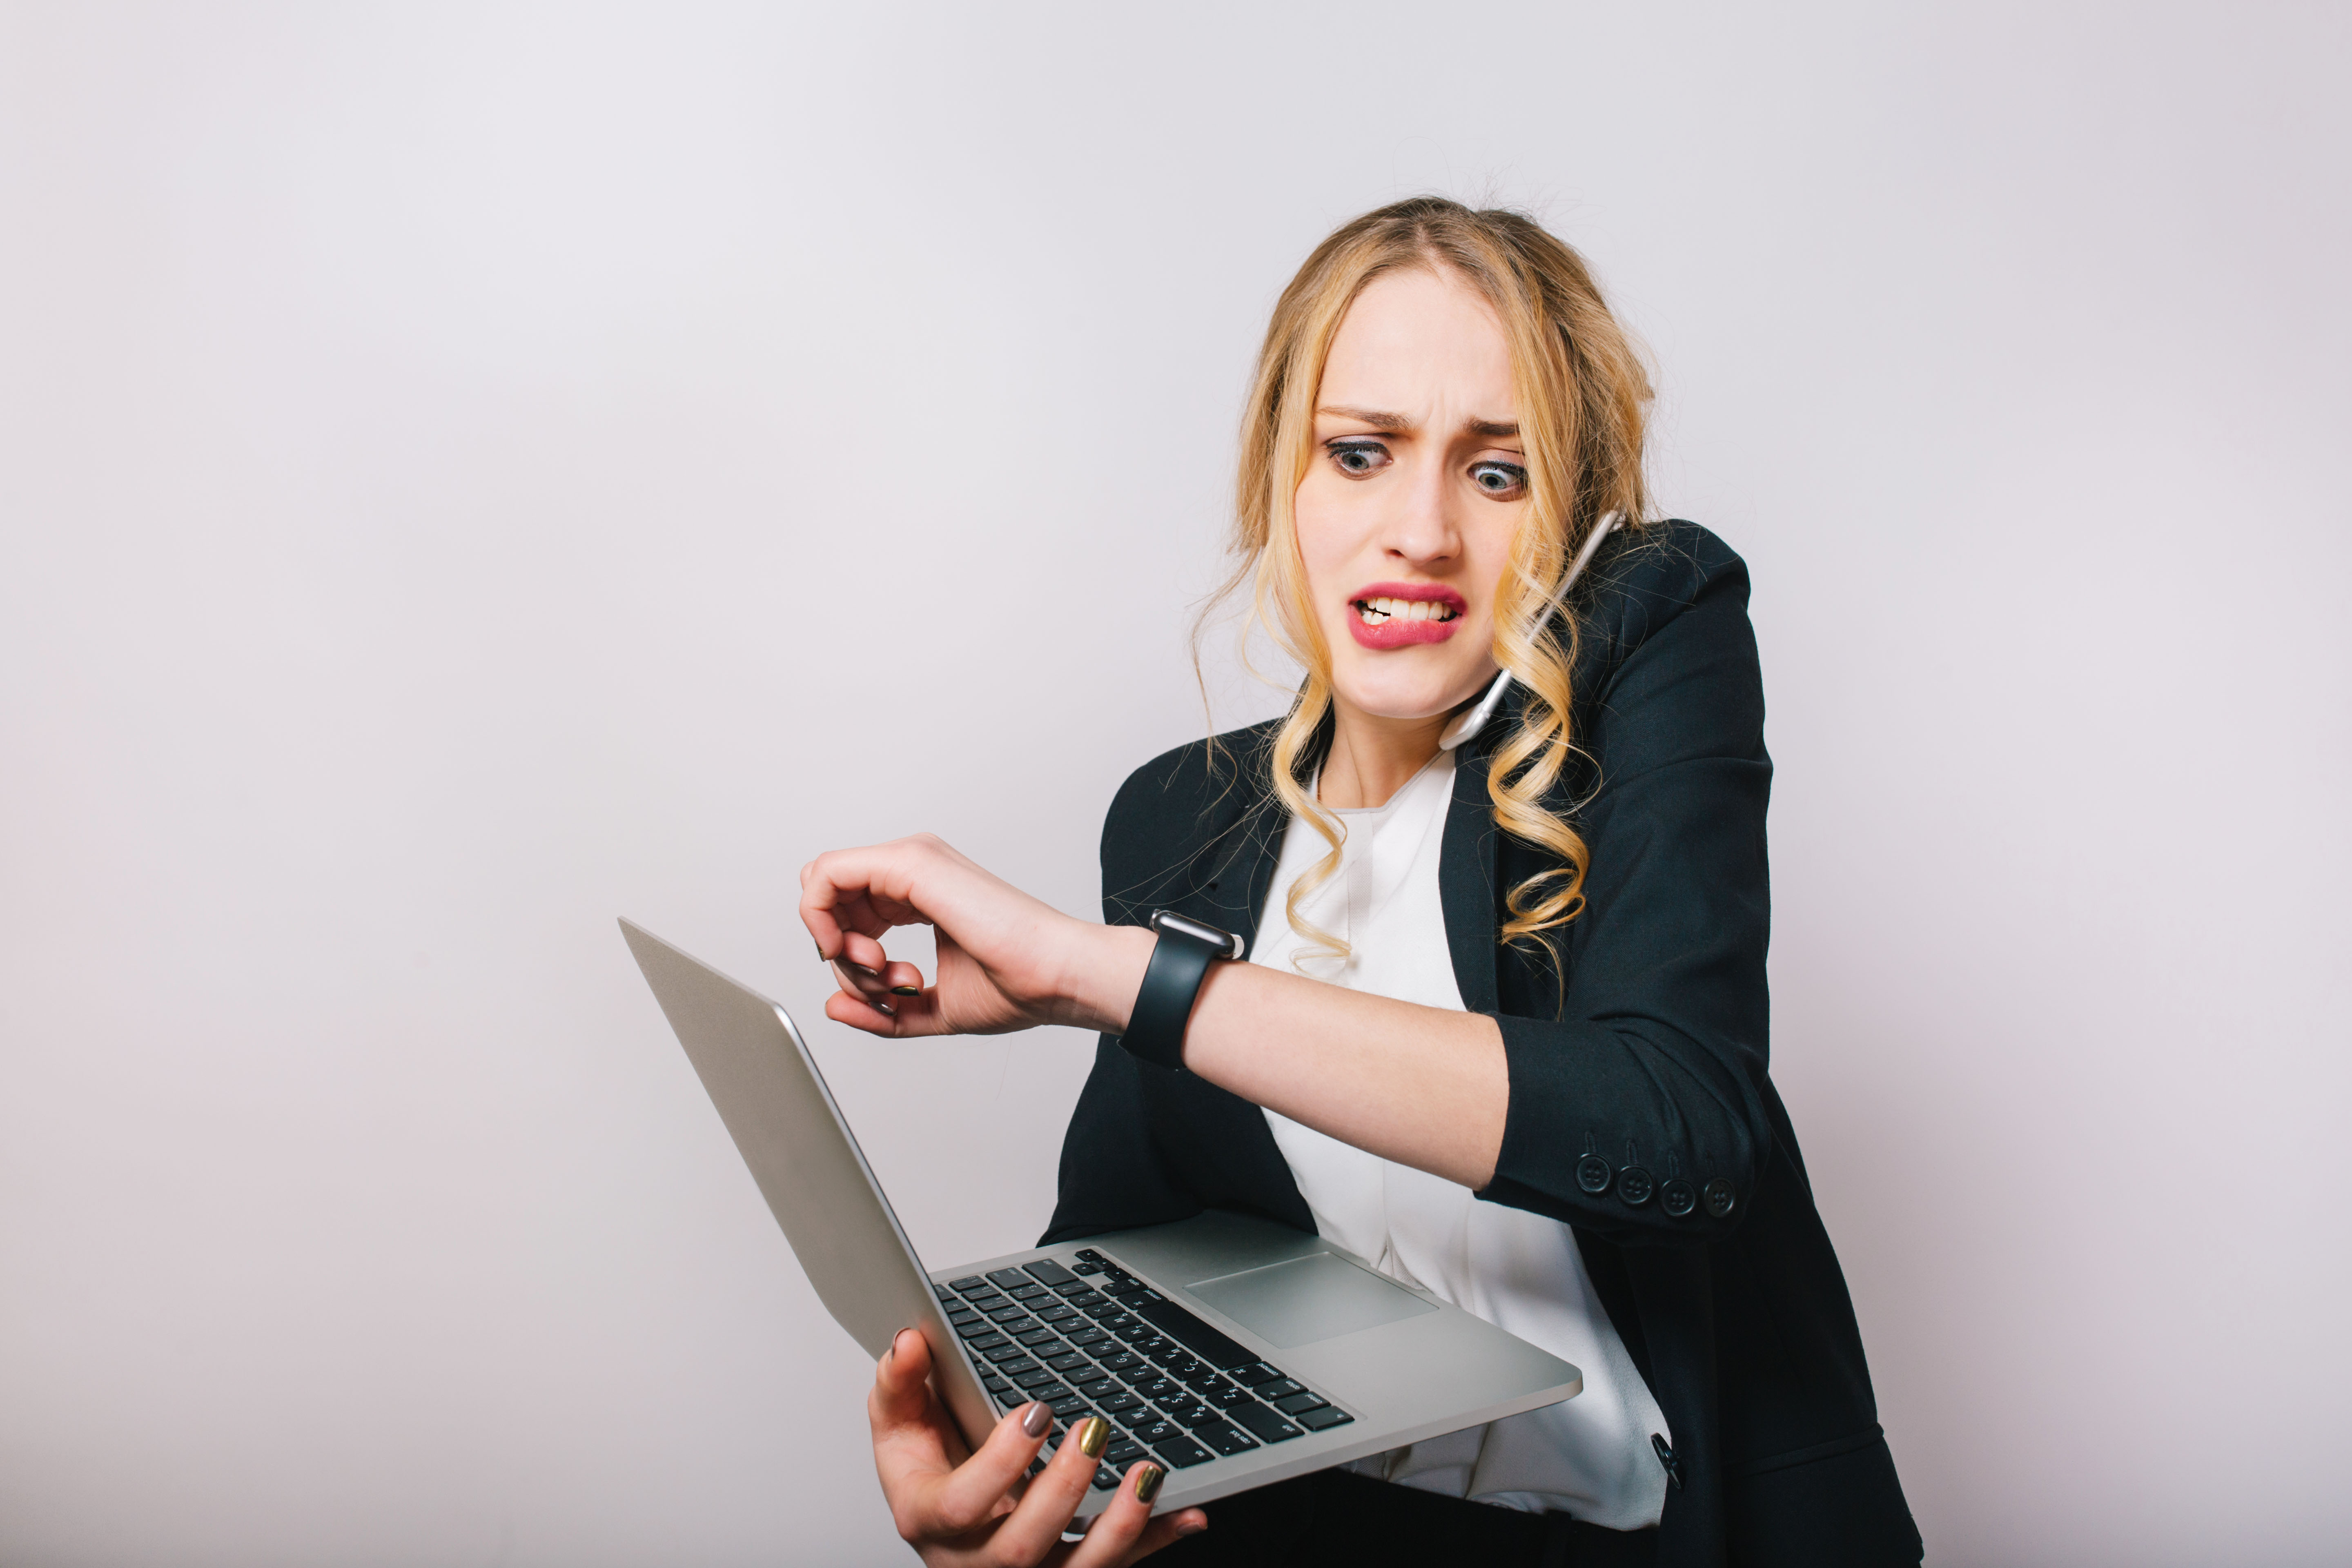 portrait-very-busy-young-businesswoman-in-formal-suit-with-laptop-talking-on-phone-looking-at-watch-being-late-job-managment-meetings-working-profession